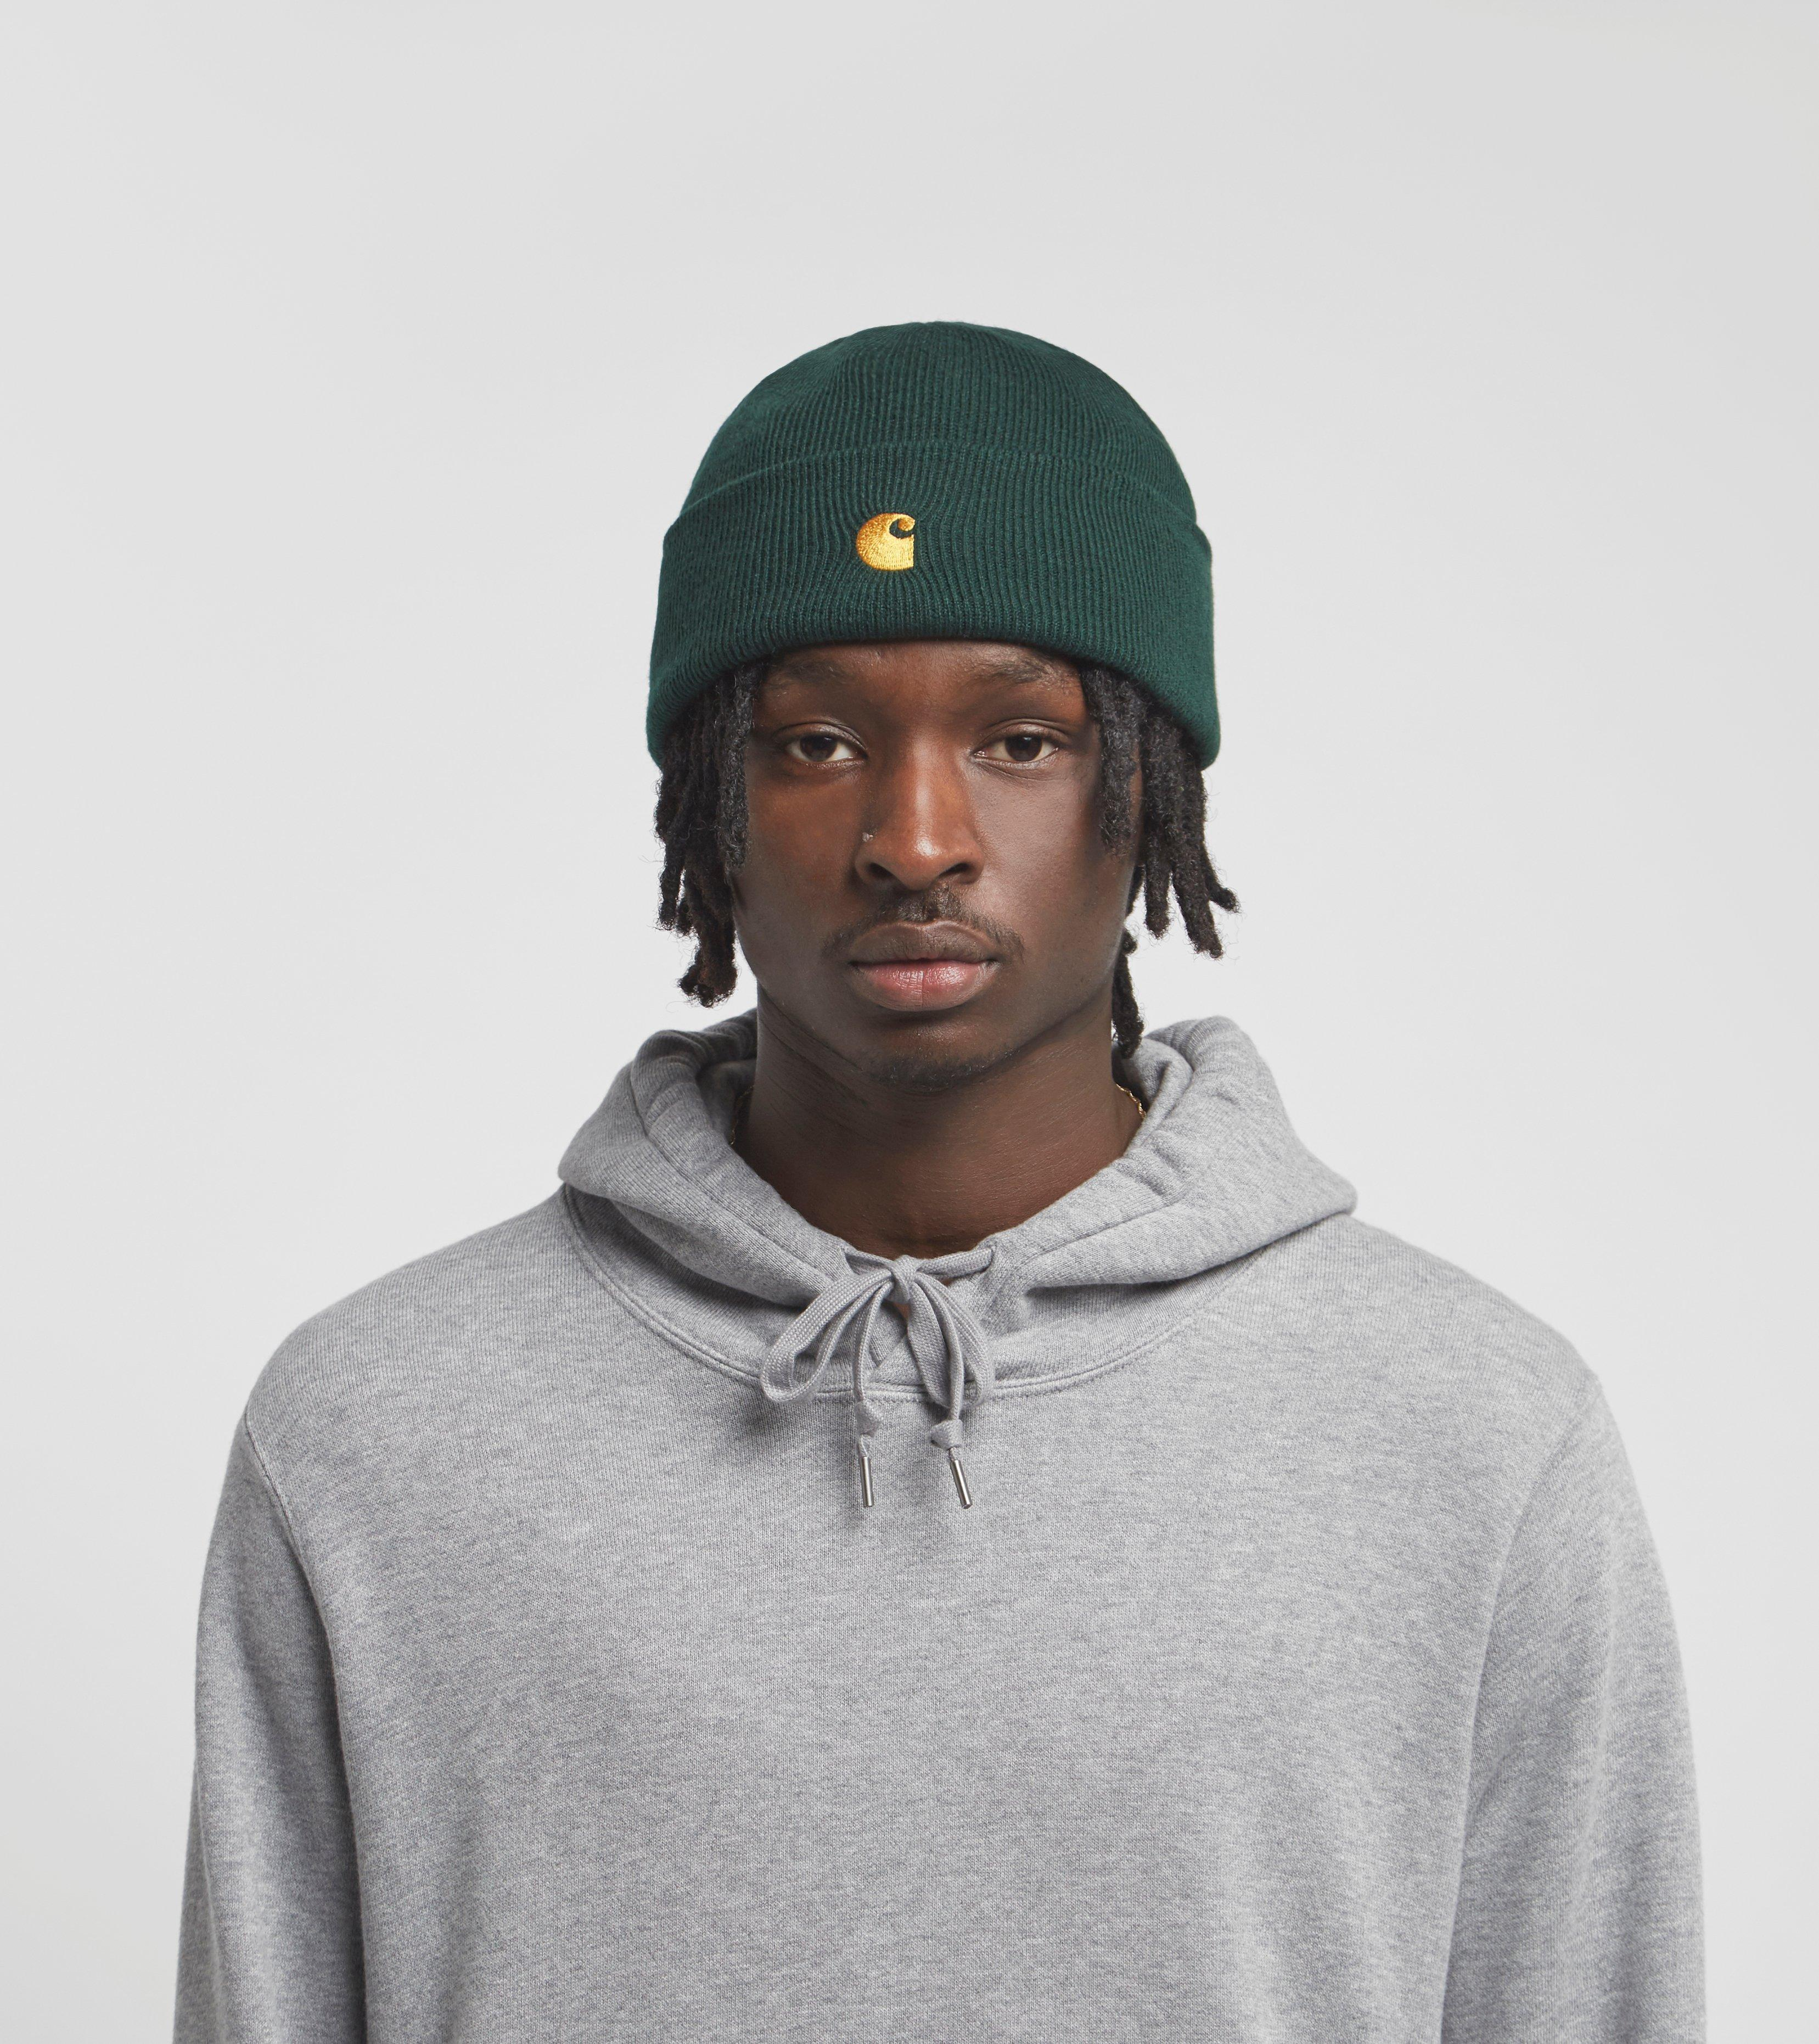 5761452afb50e Carhartt WIP Chase Beanie in Green for Men - Lyst